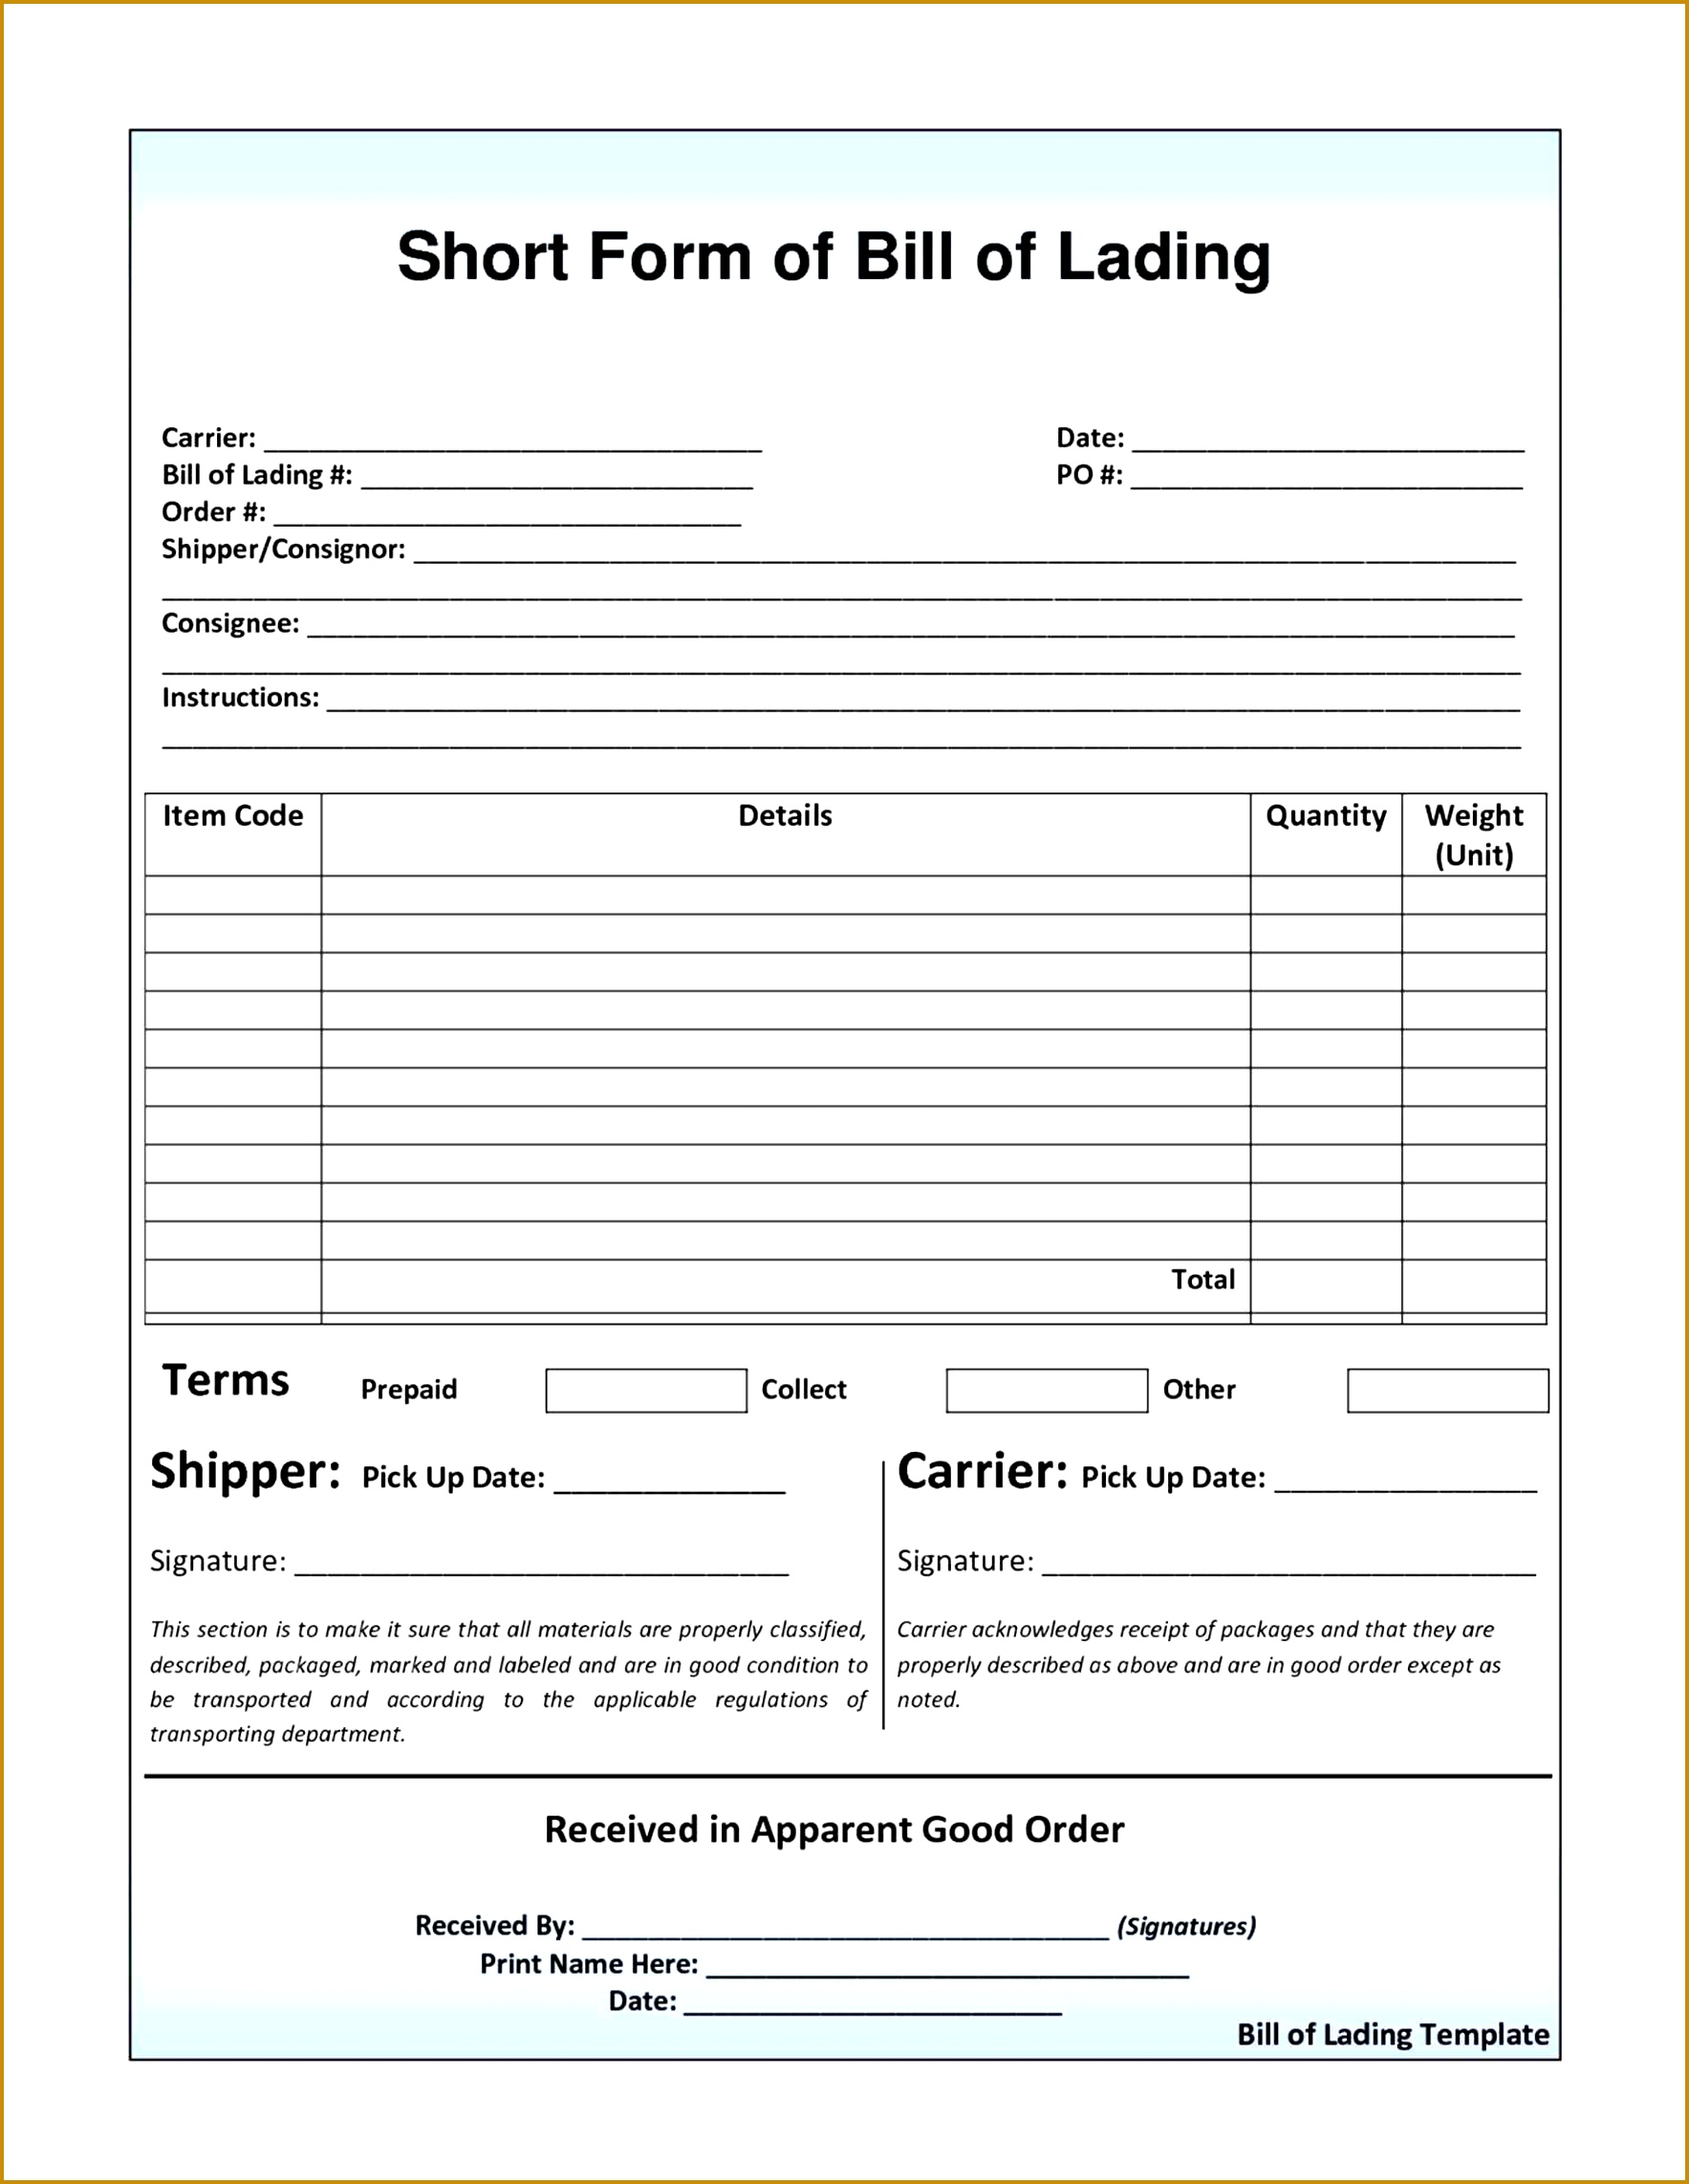 Bill Of Lading Template Word Numbered Raffle Ticket Template Free Short  Form Bill Of Lading Template 93544 Bill Lading Template Bill Lading Loan  Application ...